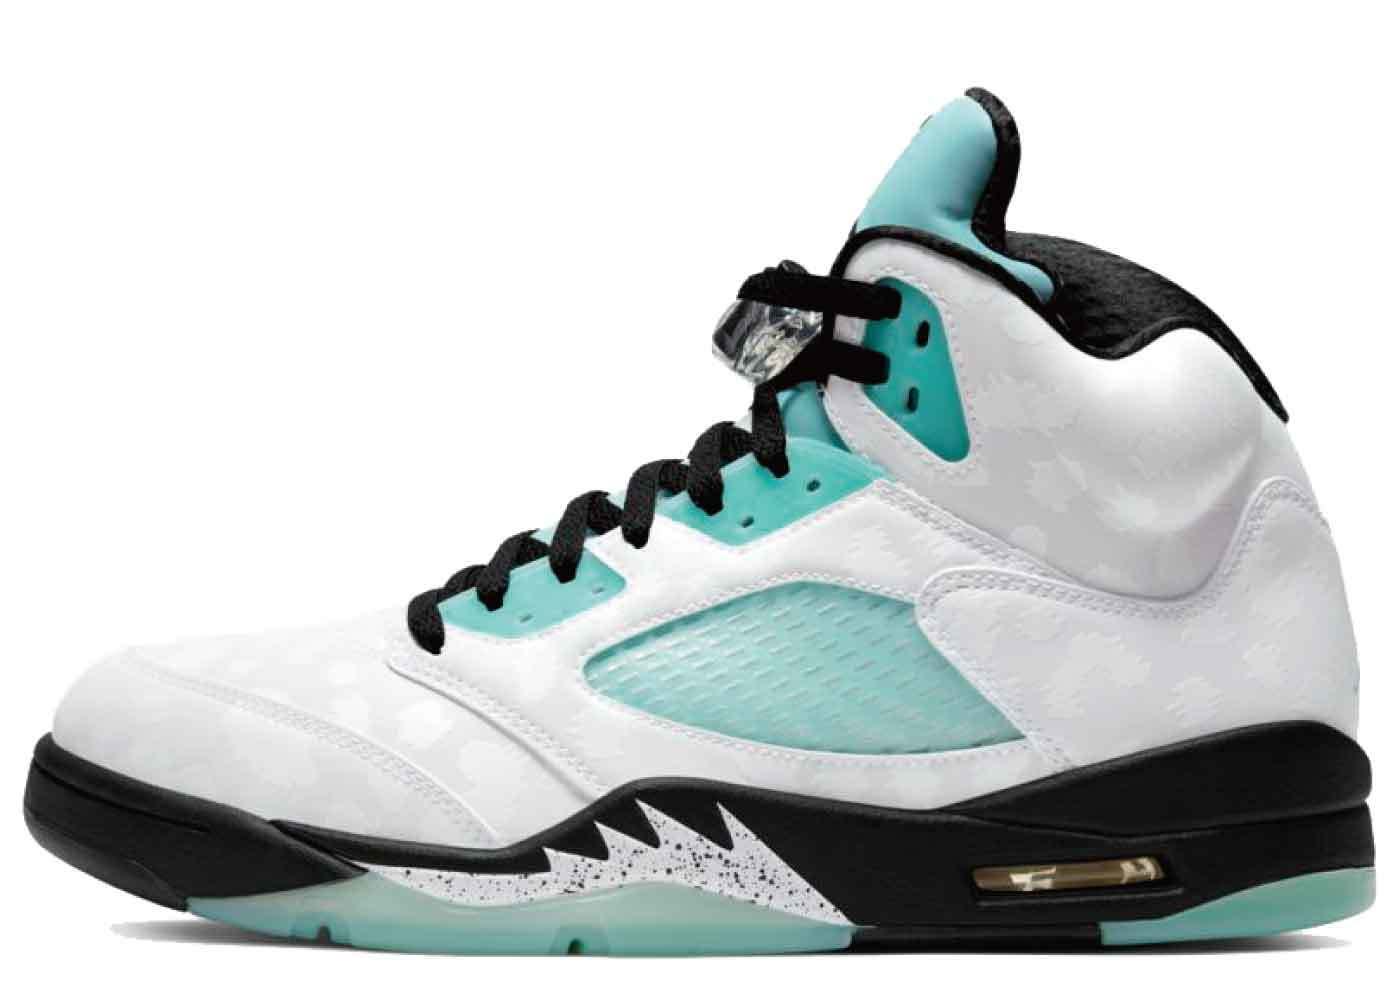 Nike Air Jordan 5 Retro Island Greenの写真